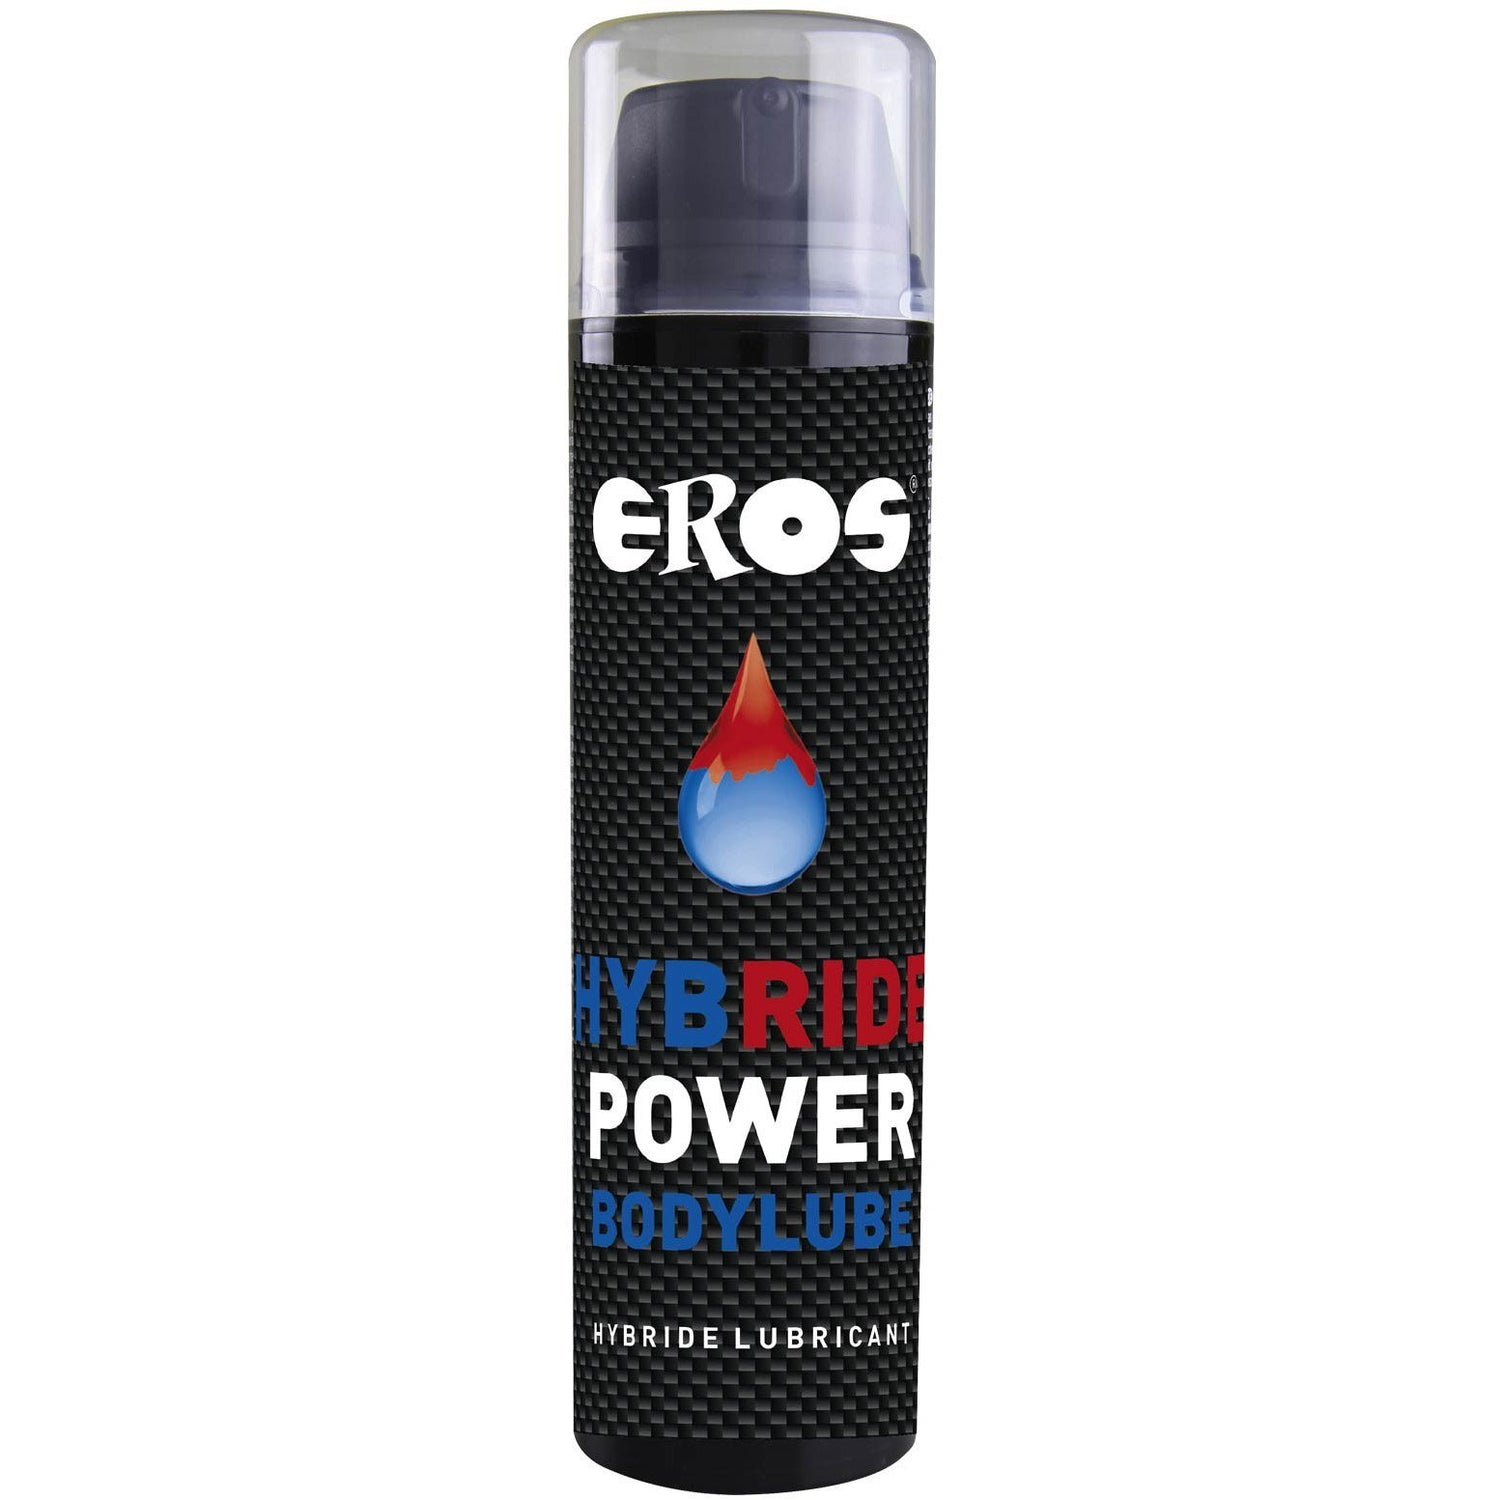 Eros - Hybride Power BodyLube Lubricant 200ml | CherryAffairs Singapore